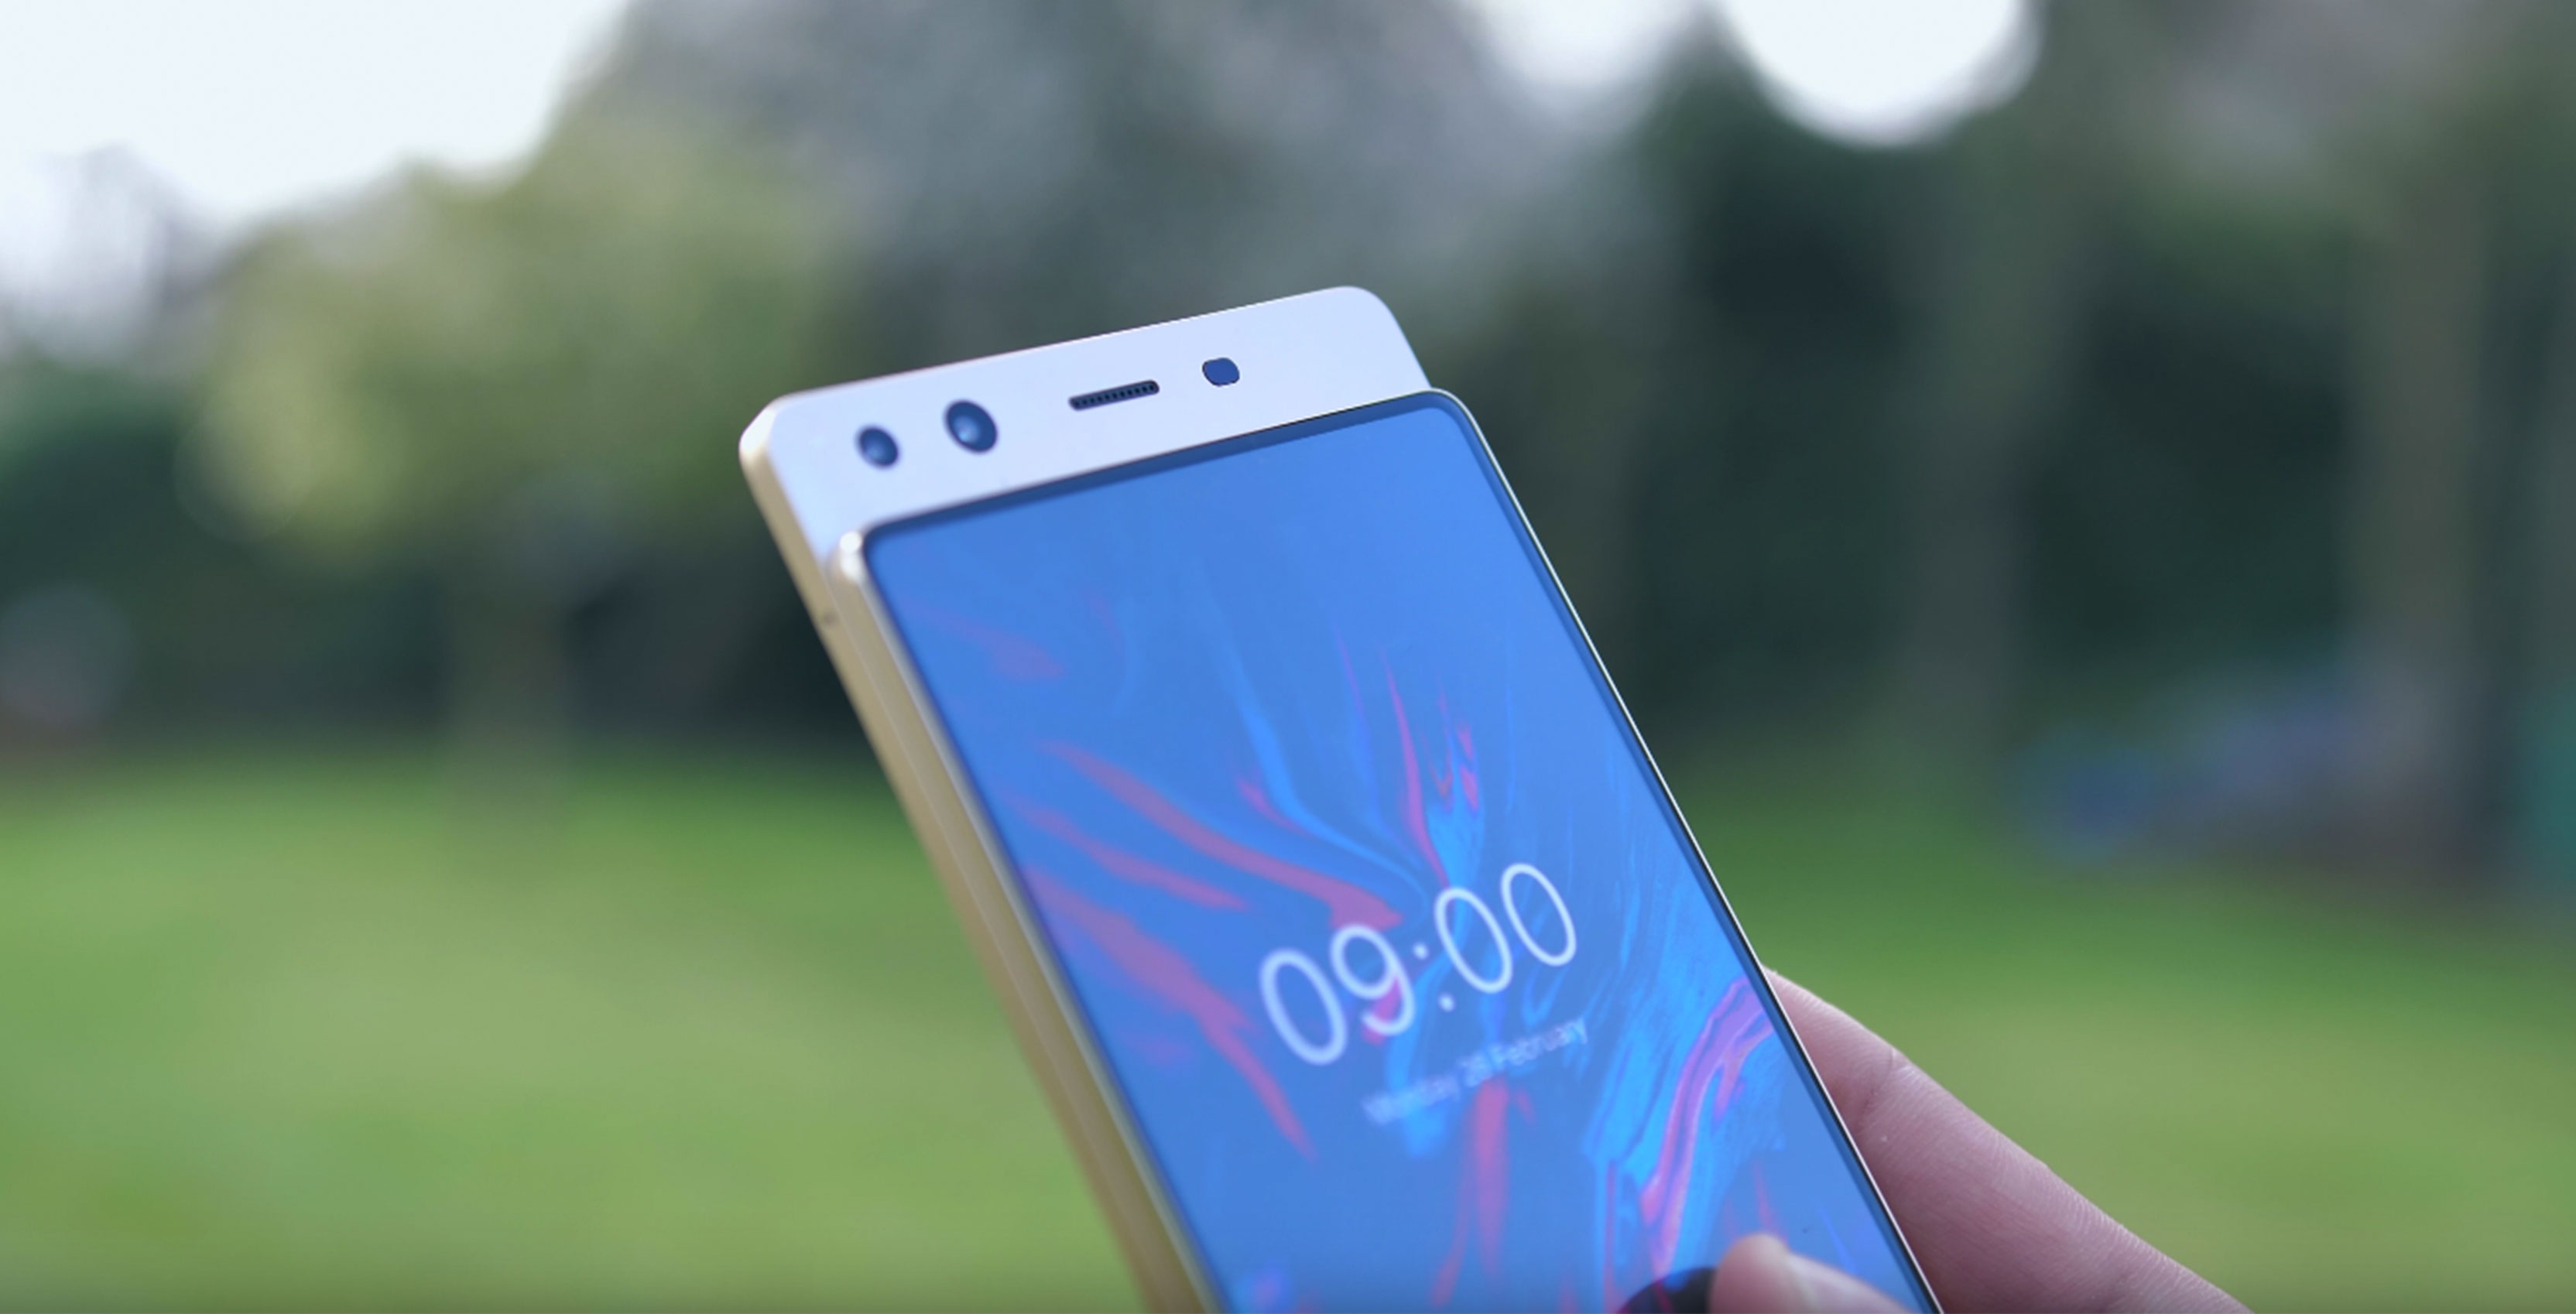 1ee07119d7d Chinese phone manufacturer Doogee has come up with a unique smartphone  design prototype that eliminates the notch from the top of edge-to-edge  displays.